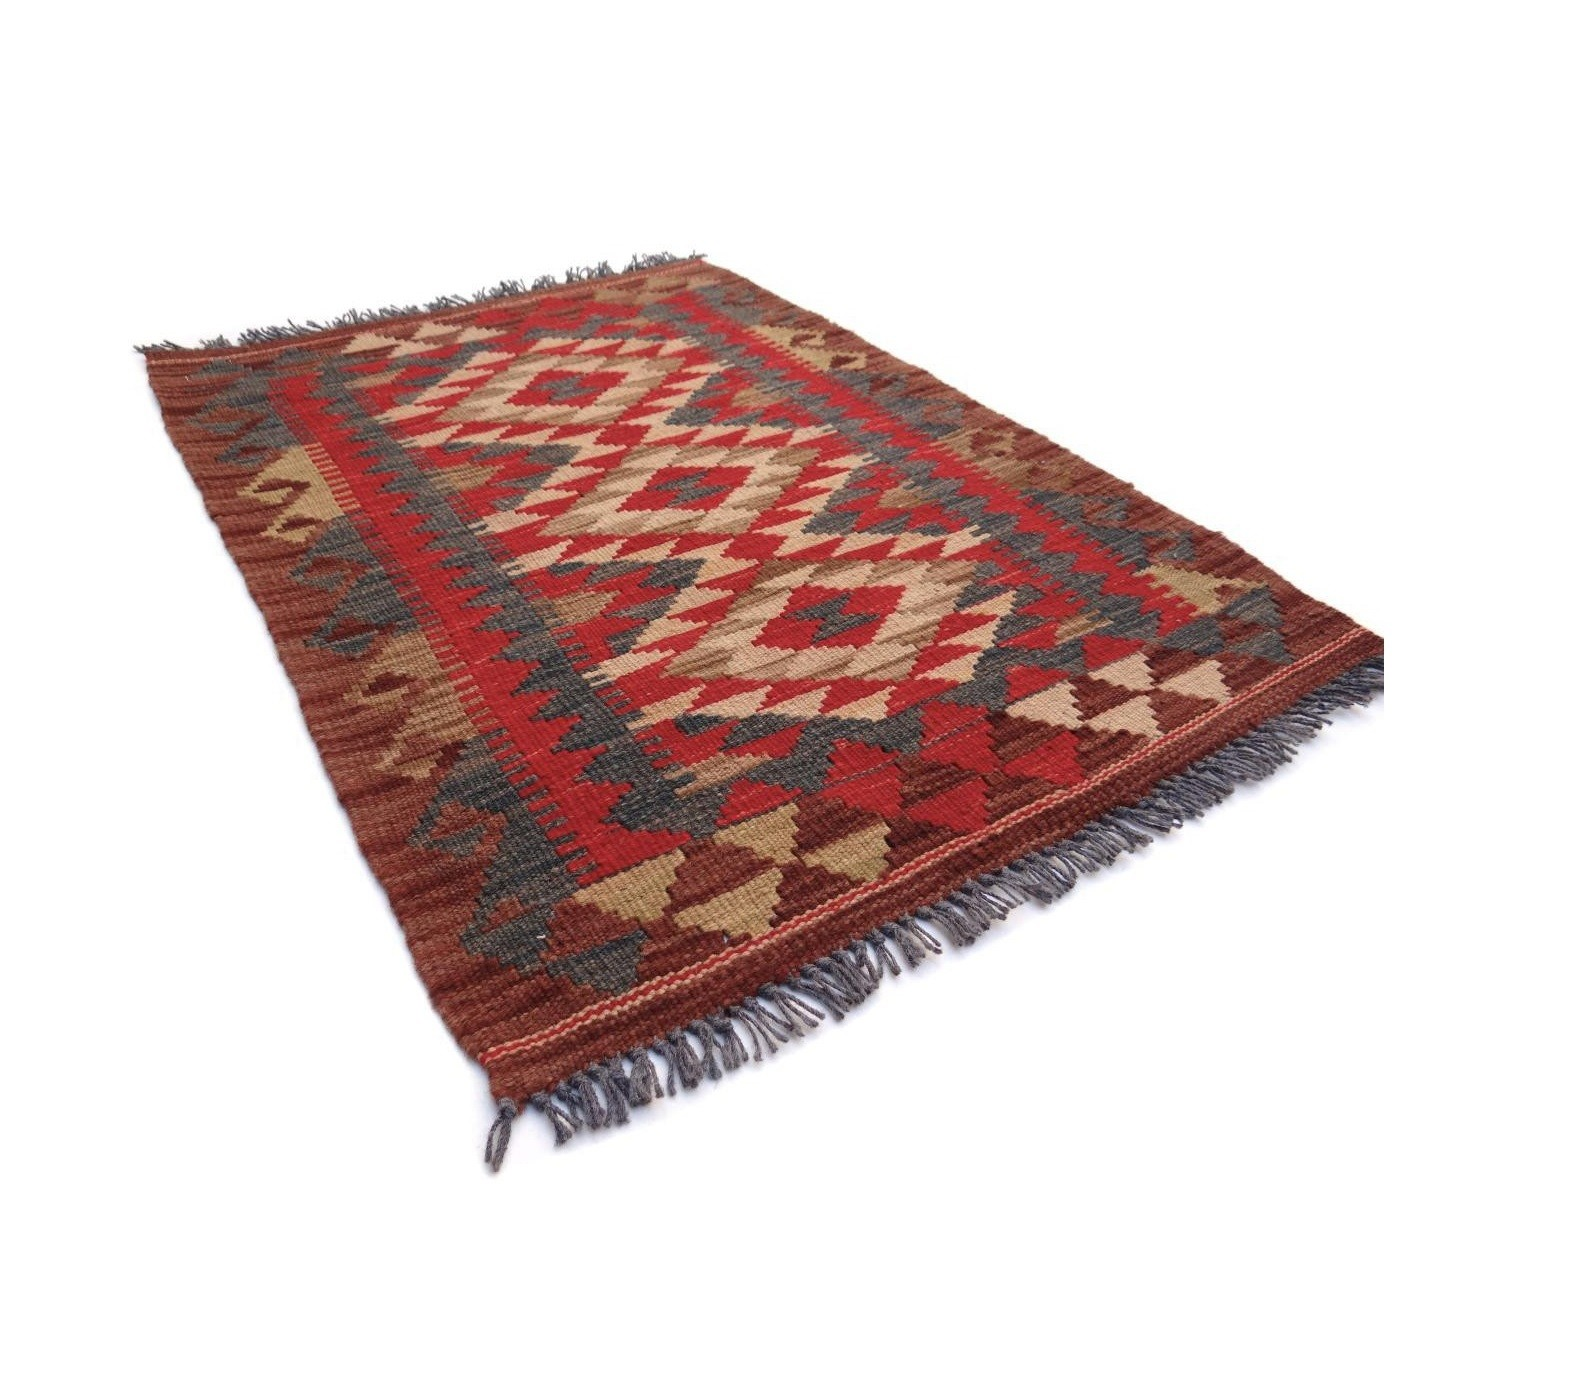 Kilim Afghan Traditionnel 89 x 63 cm